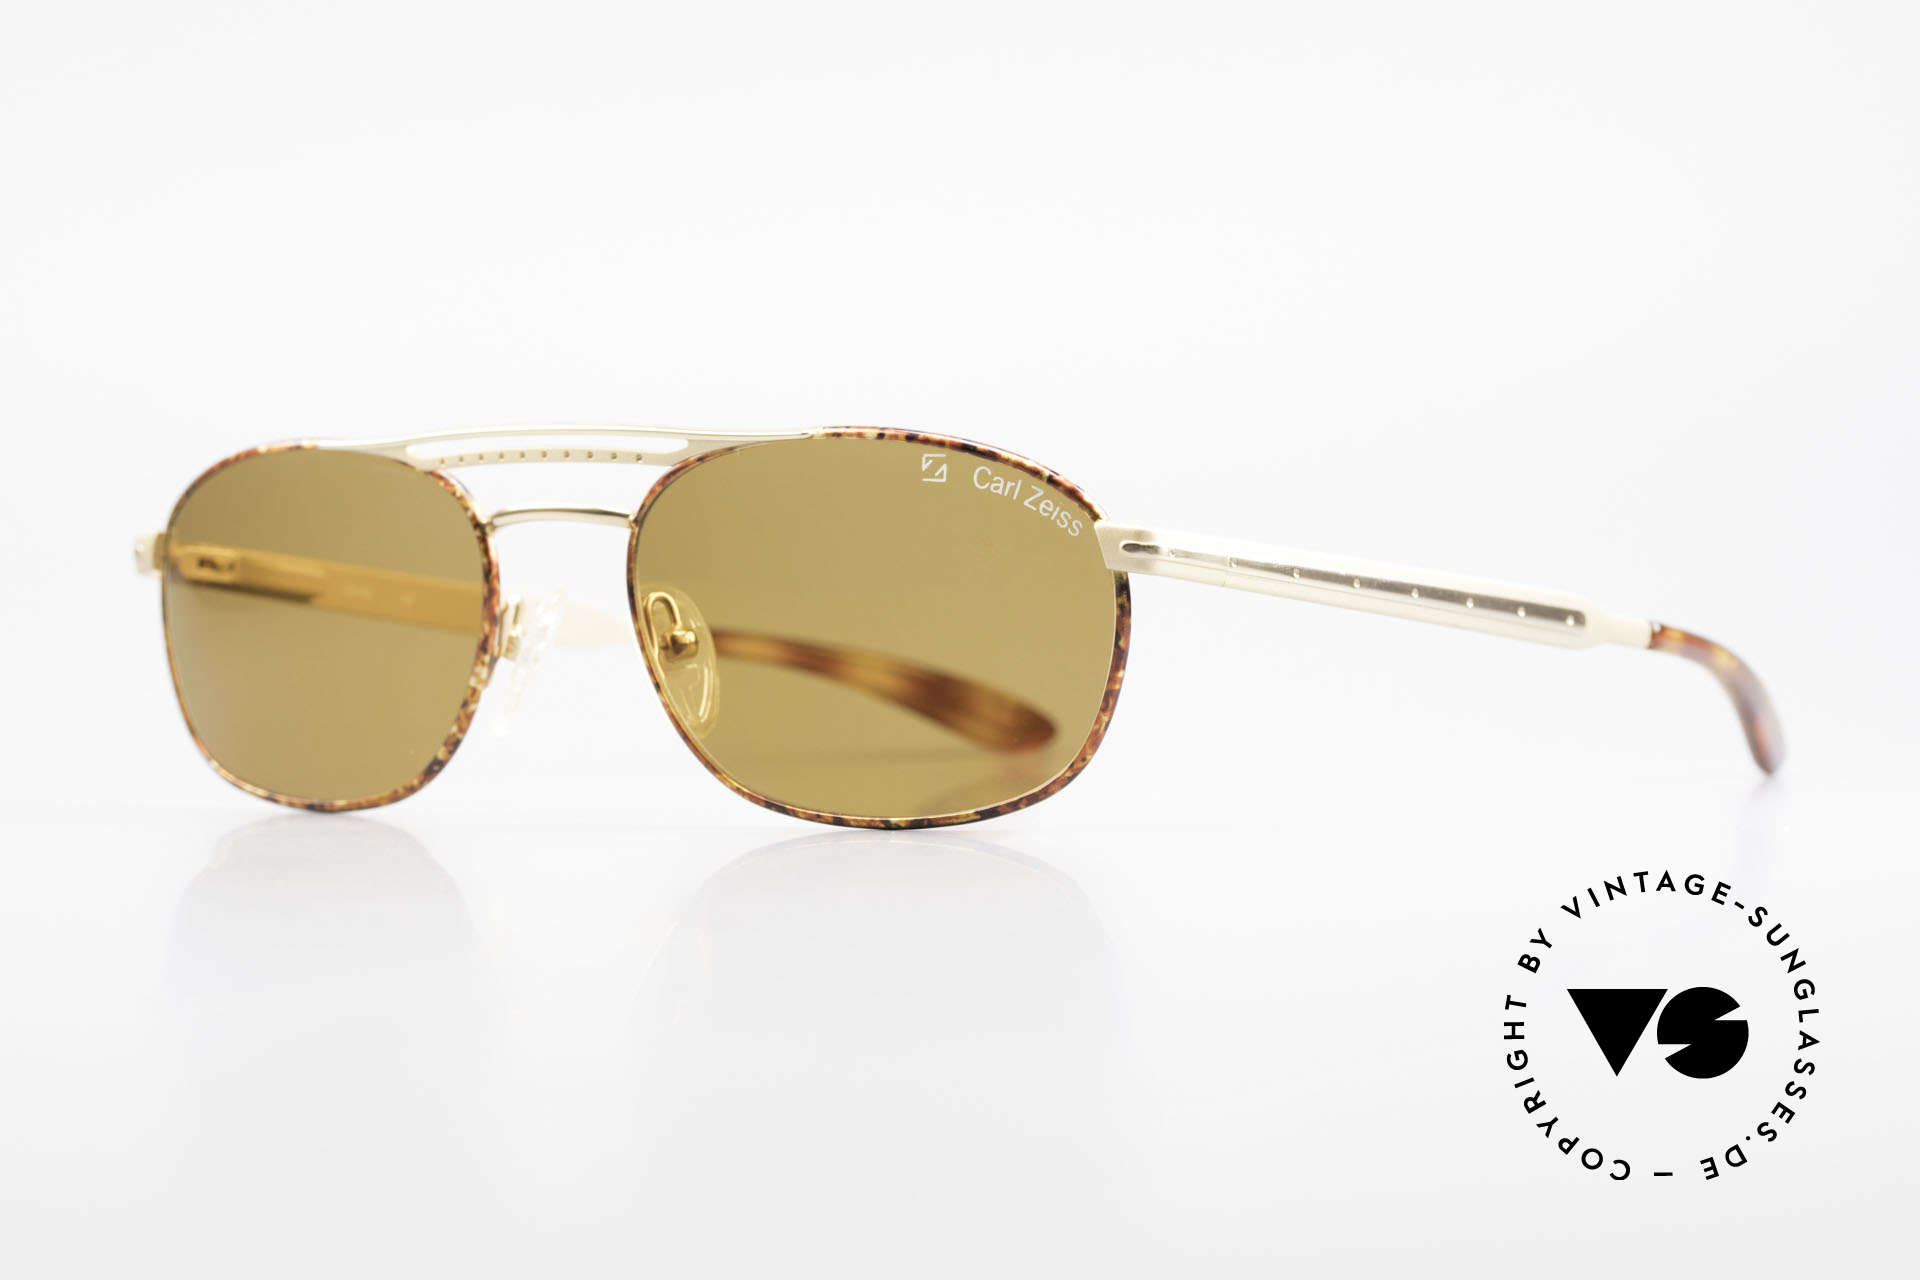 Zeiss 9426 90's Premium Sunglasses, glare-free, high-contrast vision with color fidelity, Made for Men